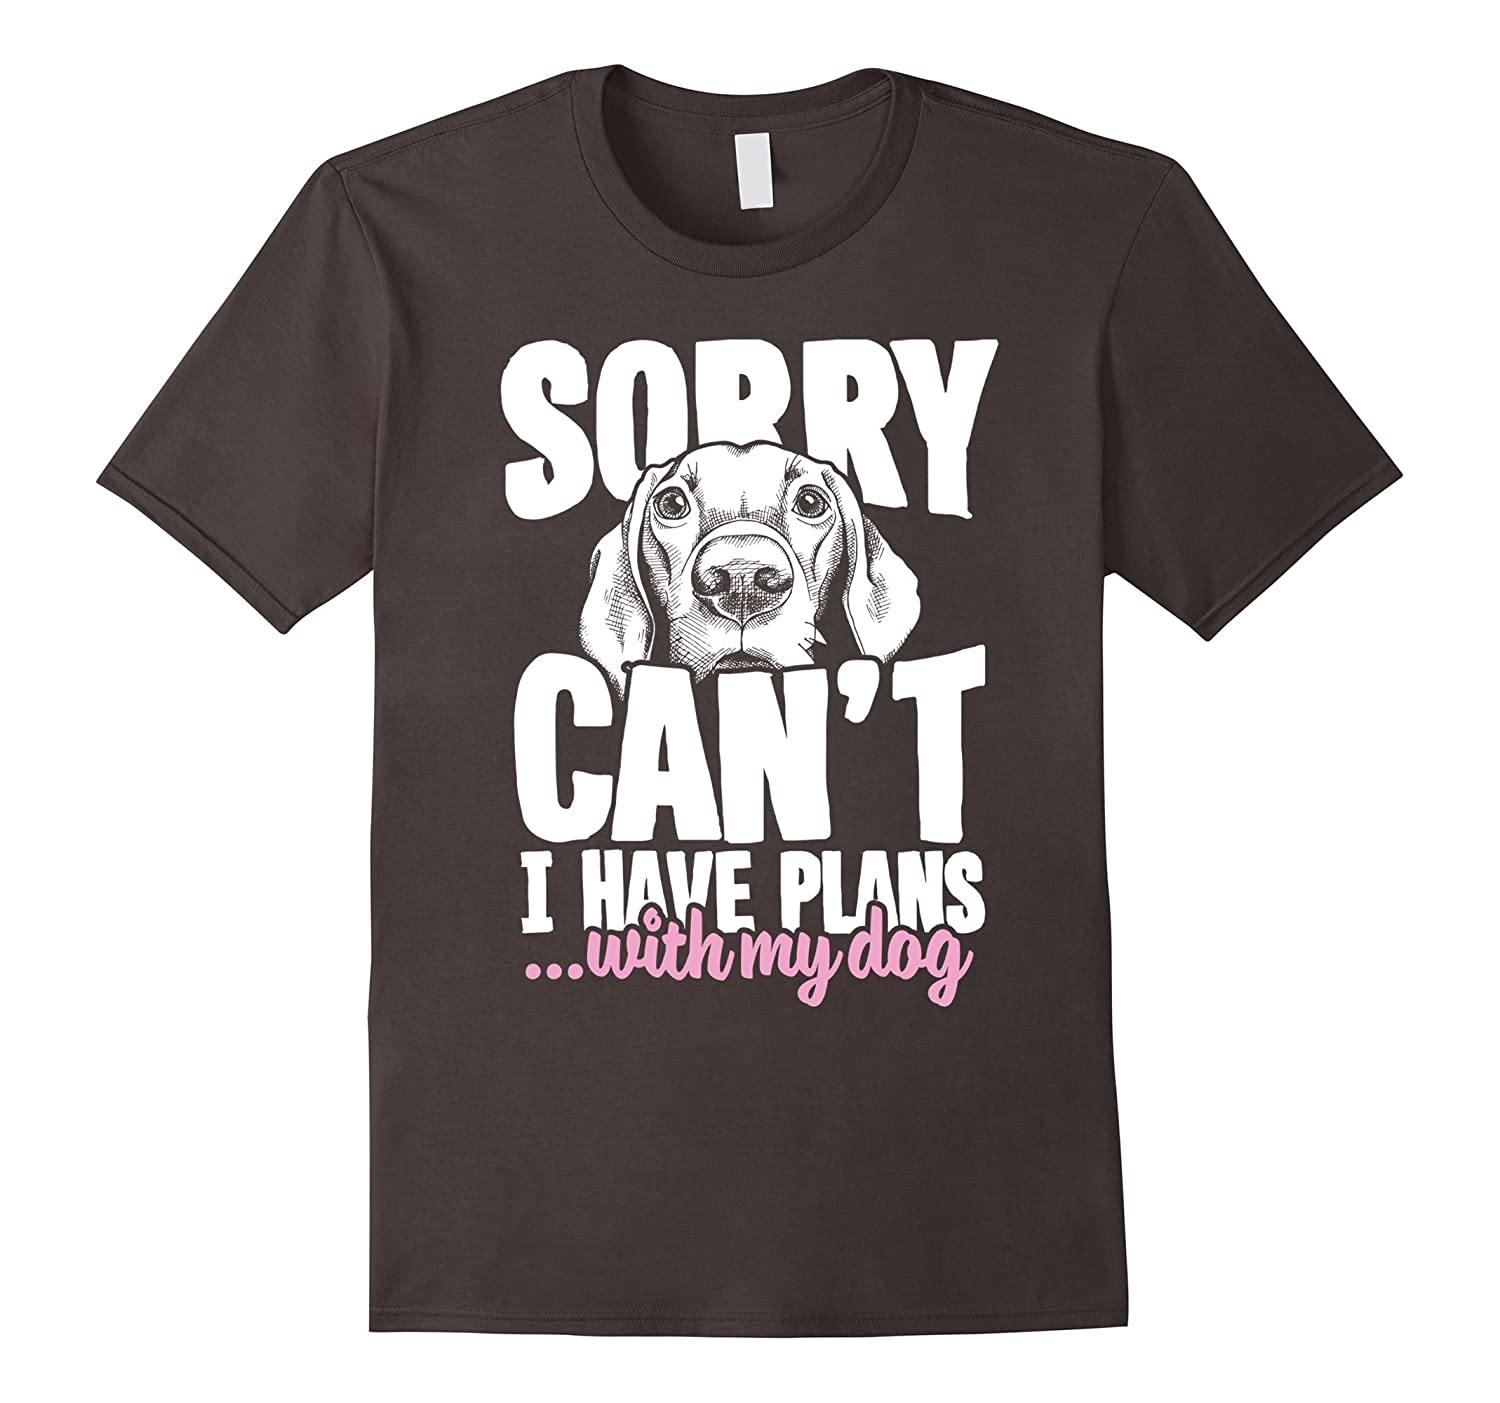 I Love My Dog Schnauzer Animal Lover T Shirt Design T: Sorry Cant I Have Plans With My Dog Funny Tee Shirt